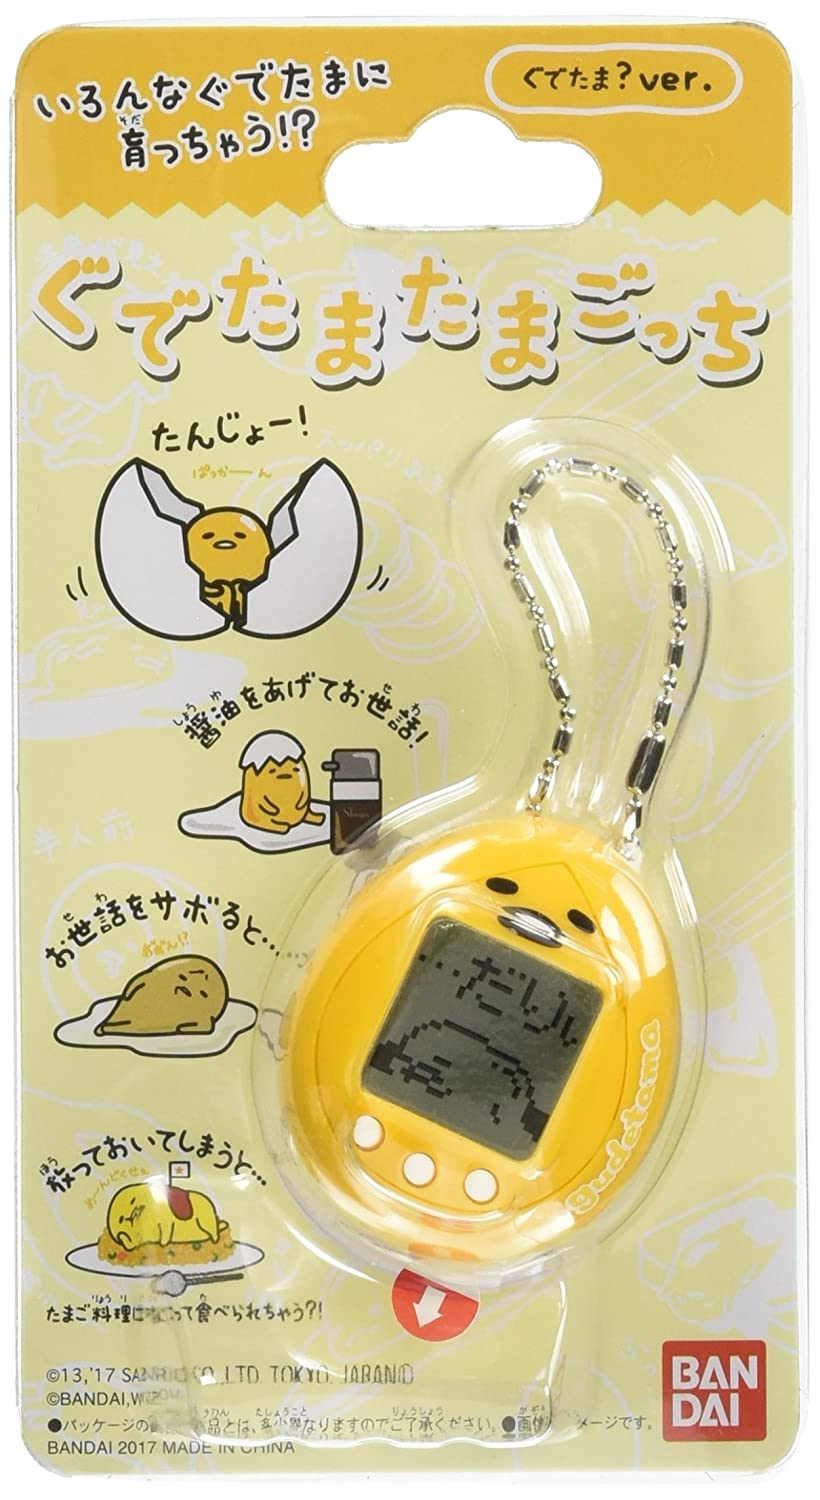 Bandai Tamagotchi gumatama Ver. Electric Toy pet